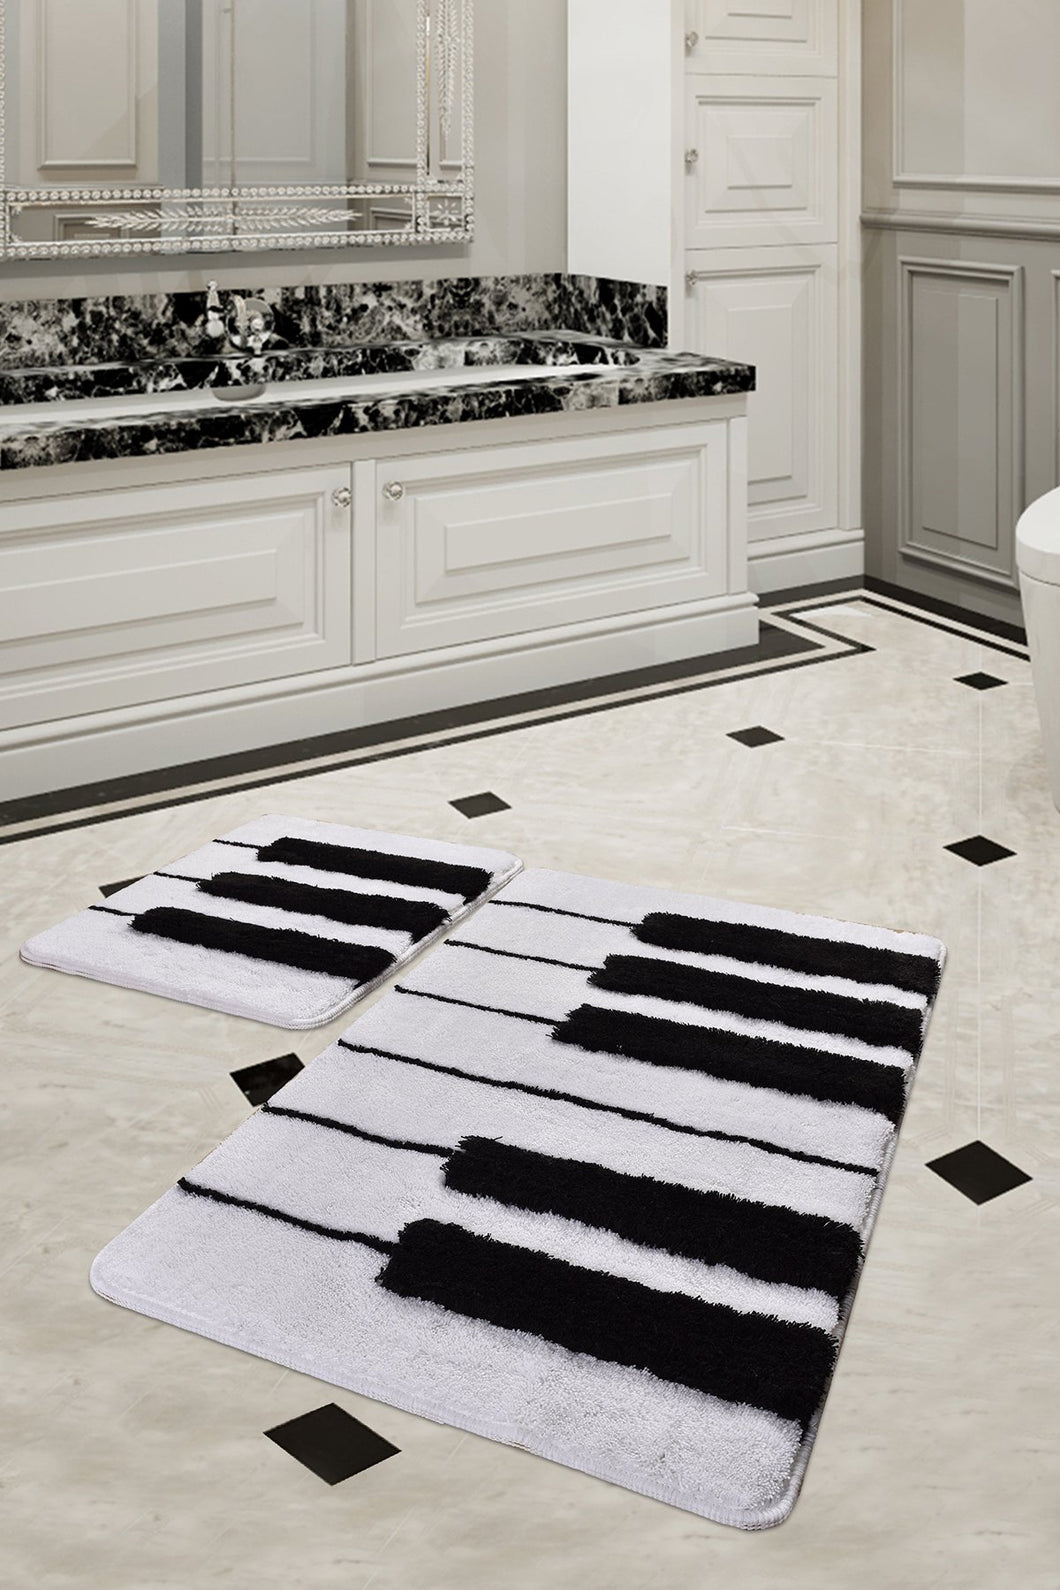 Antdecor Piano Design Black&White Modern Decorative Area Rug